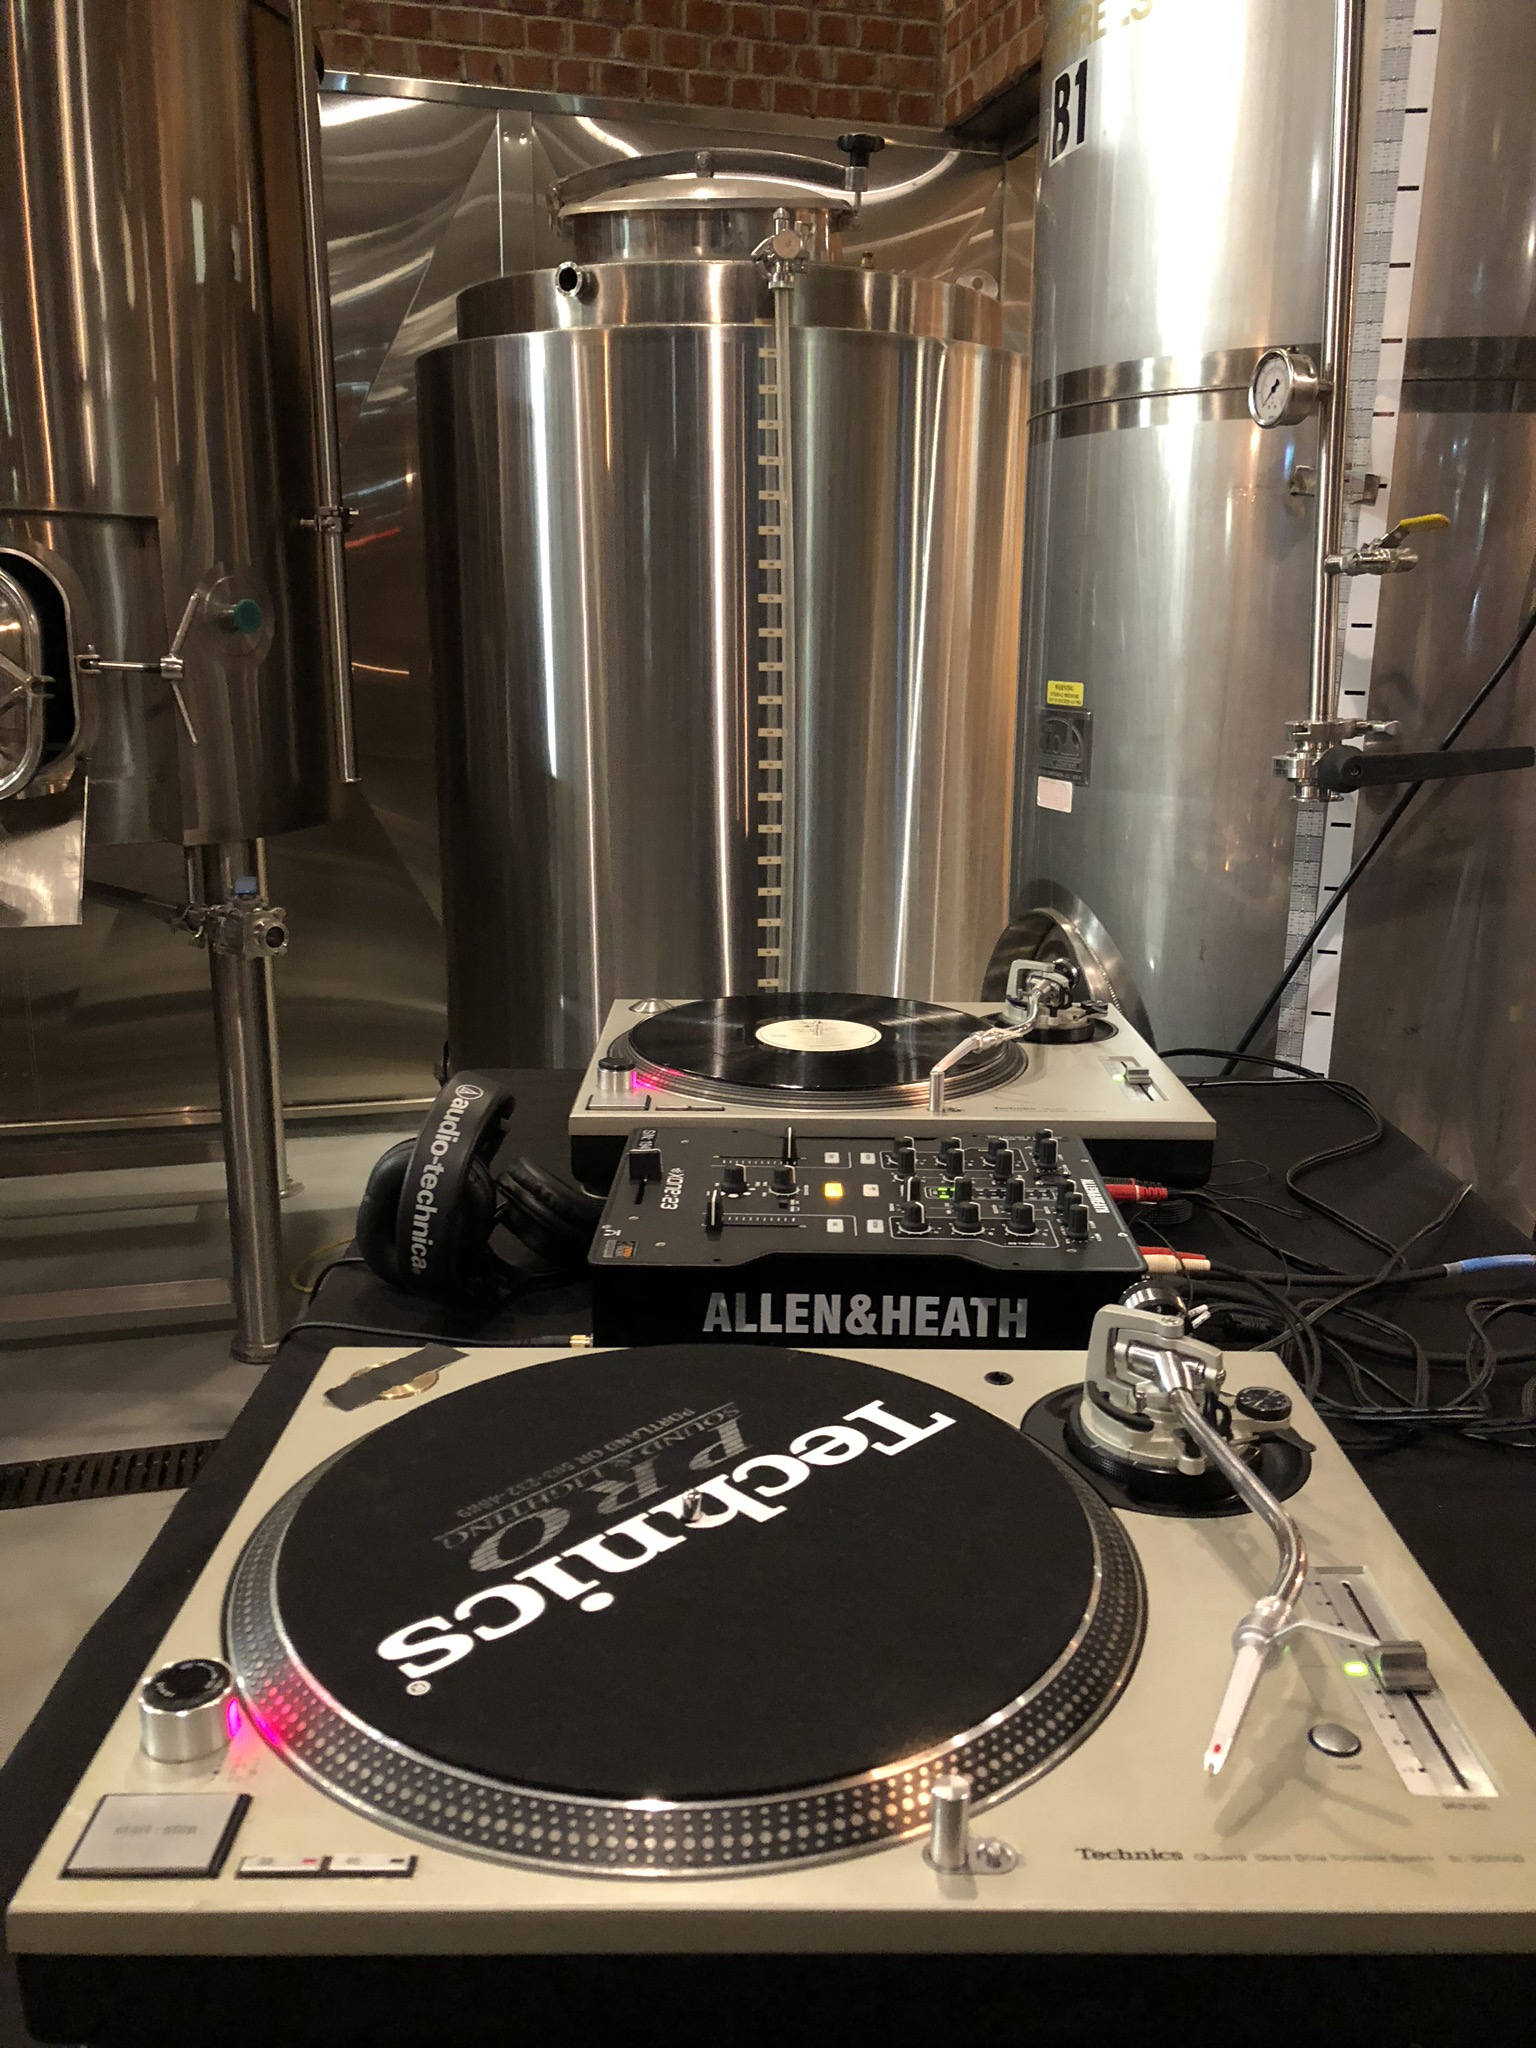 The turntable at The Commons Brewery. (photo by Cat Stelzer